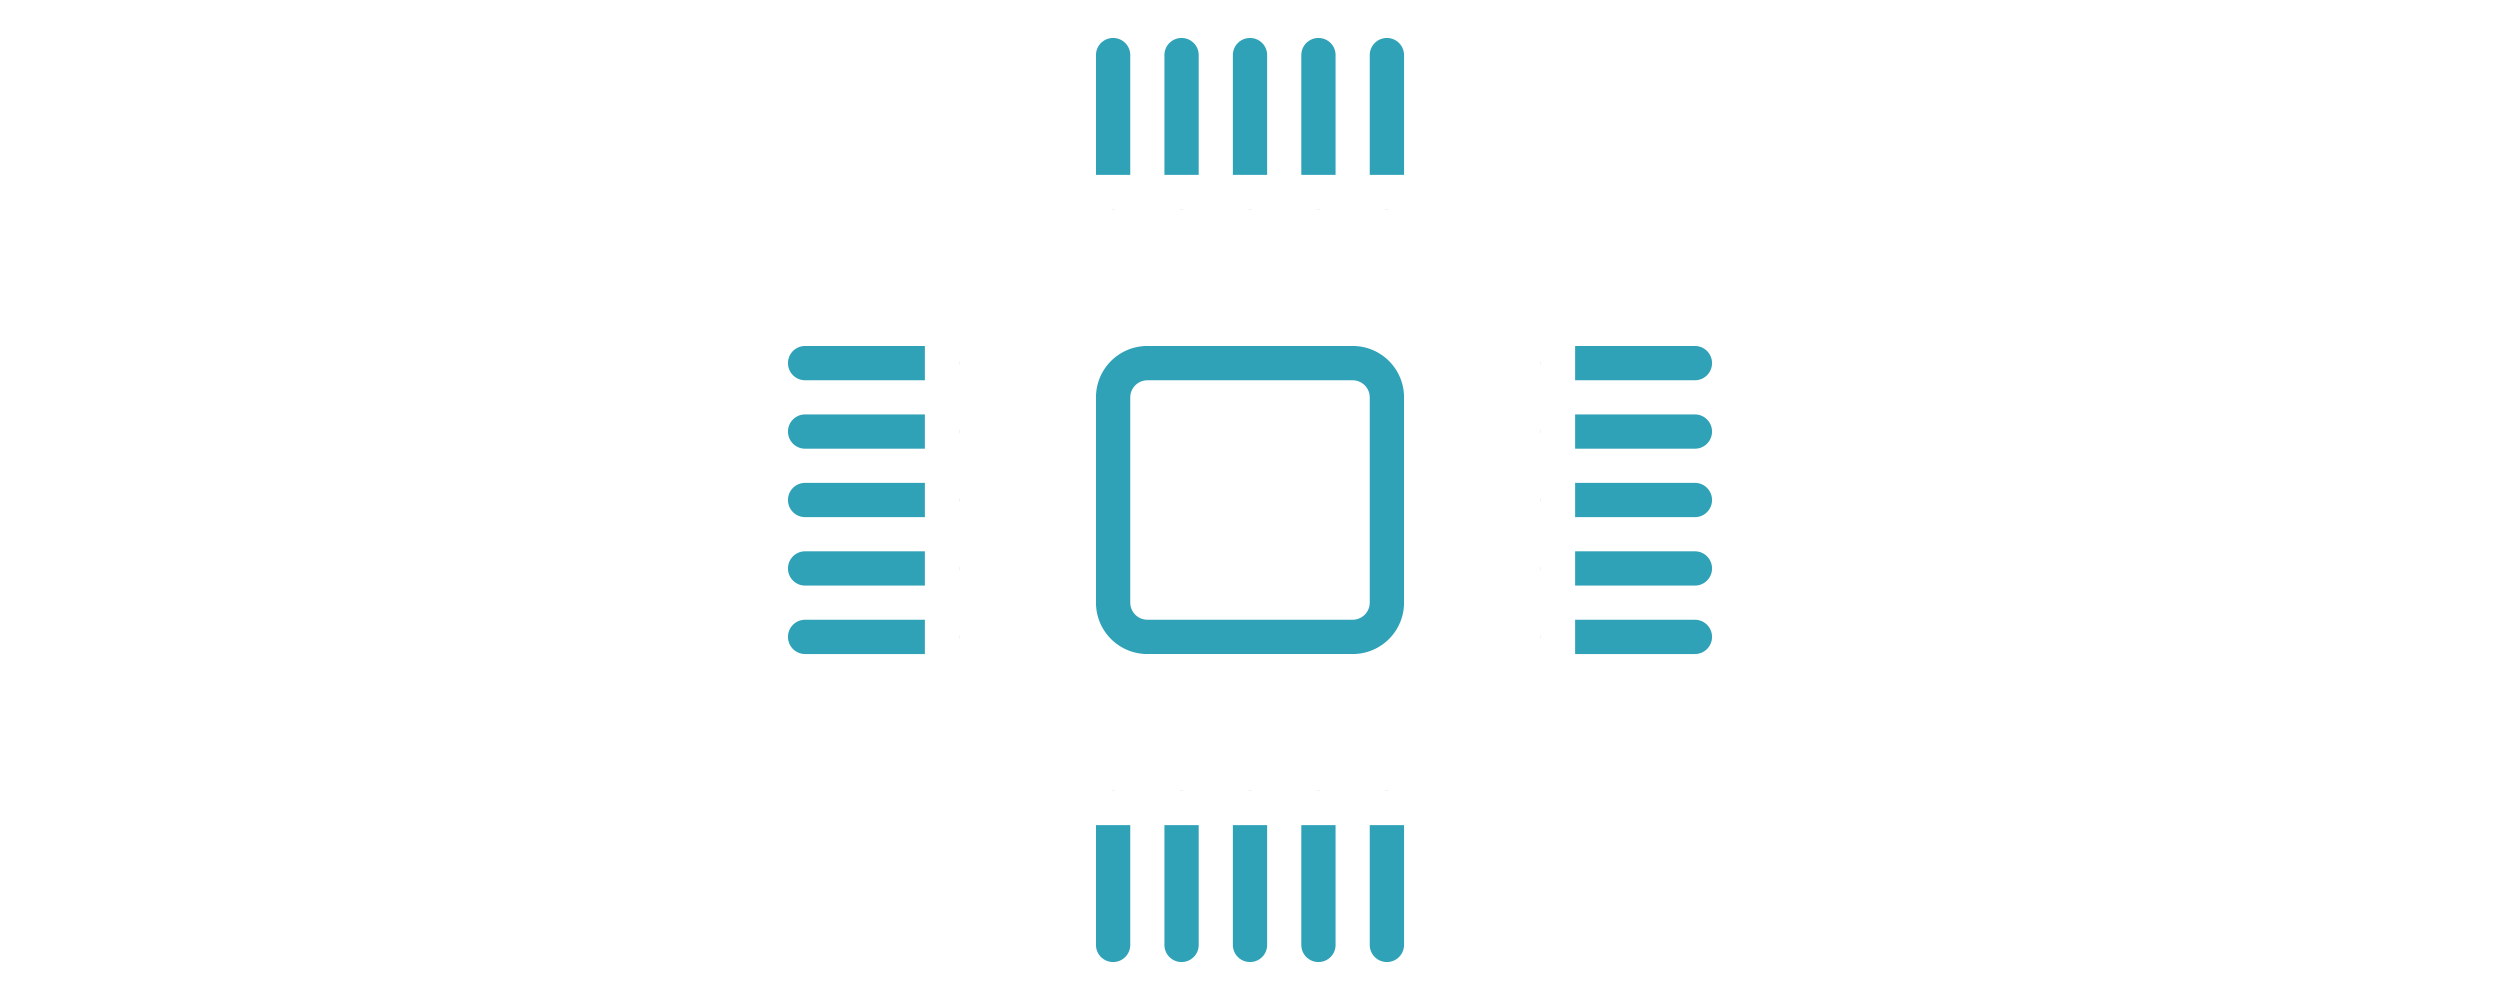 computer-chip-icon.png